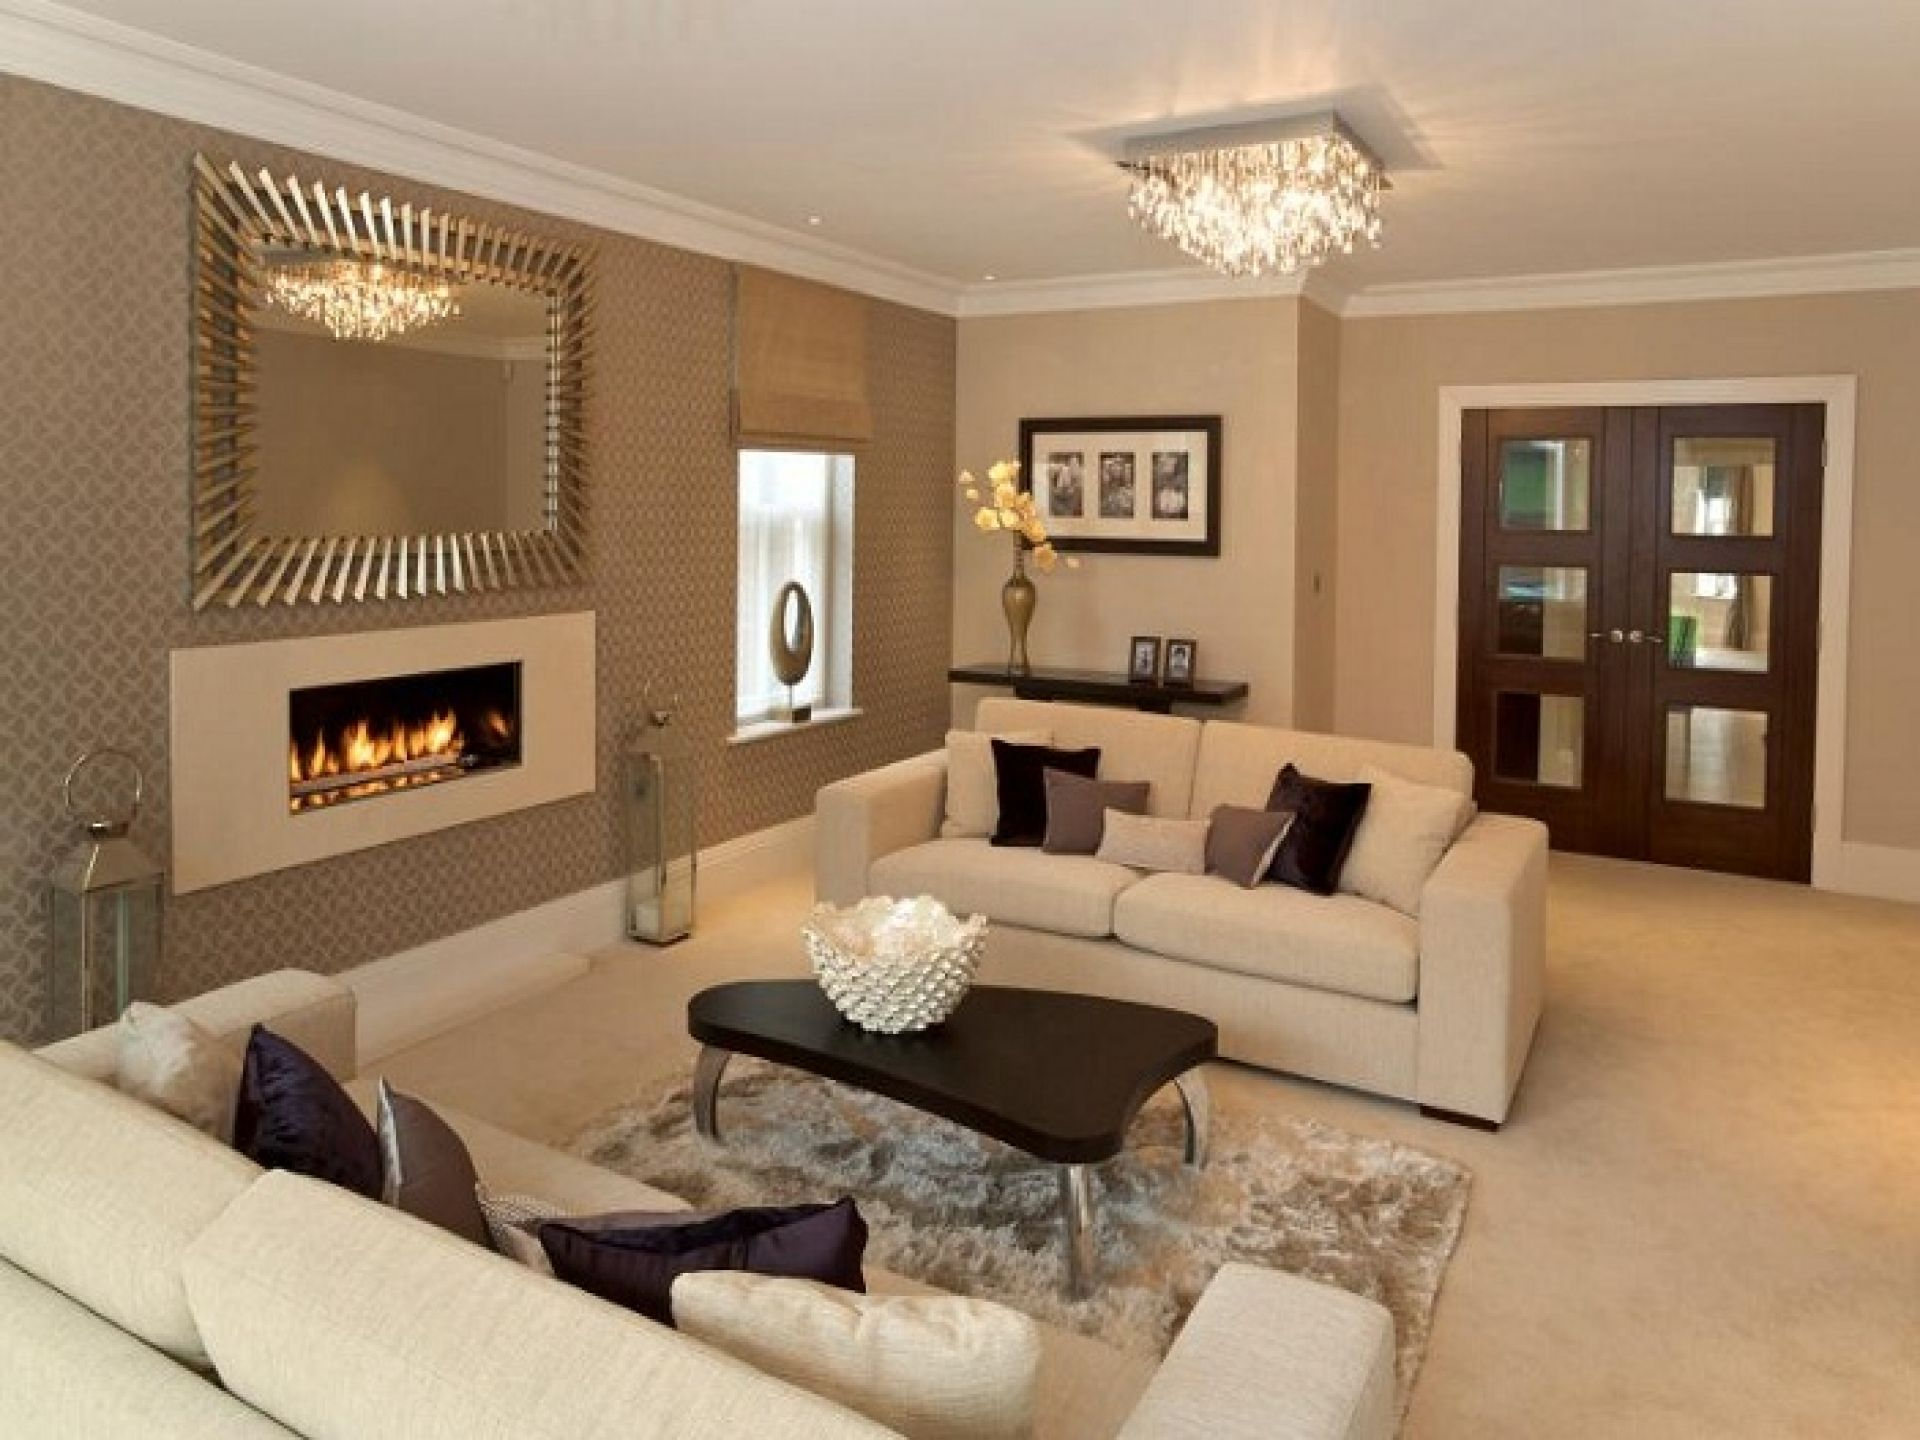 Living Room Color Ideas For Brown Furniture Top 3 Choices To Choose From Goodworksfurnitur Beige Living Rooms Living Room Color Paint Colors For Living Room